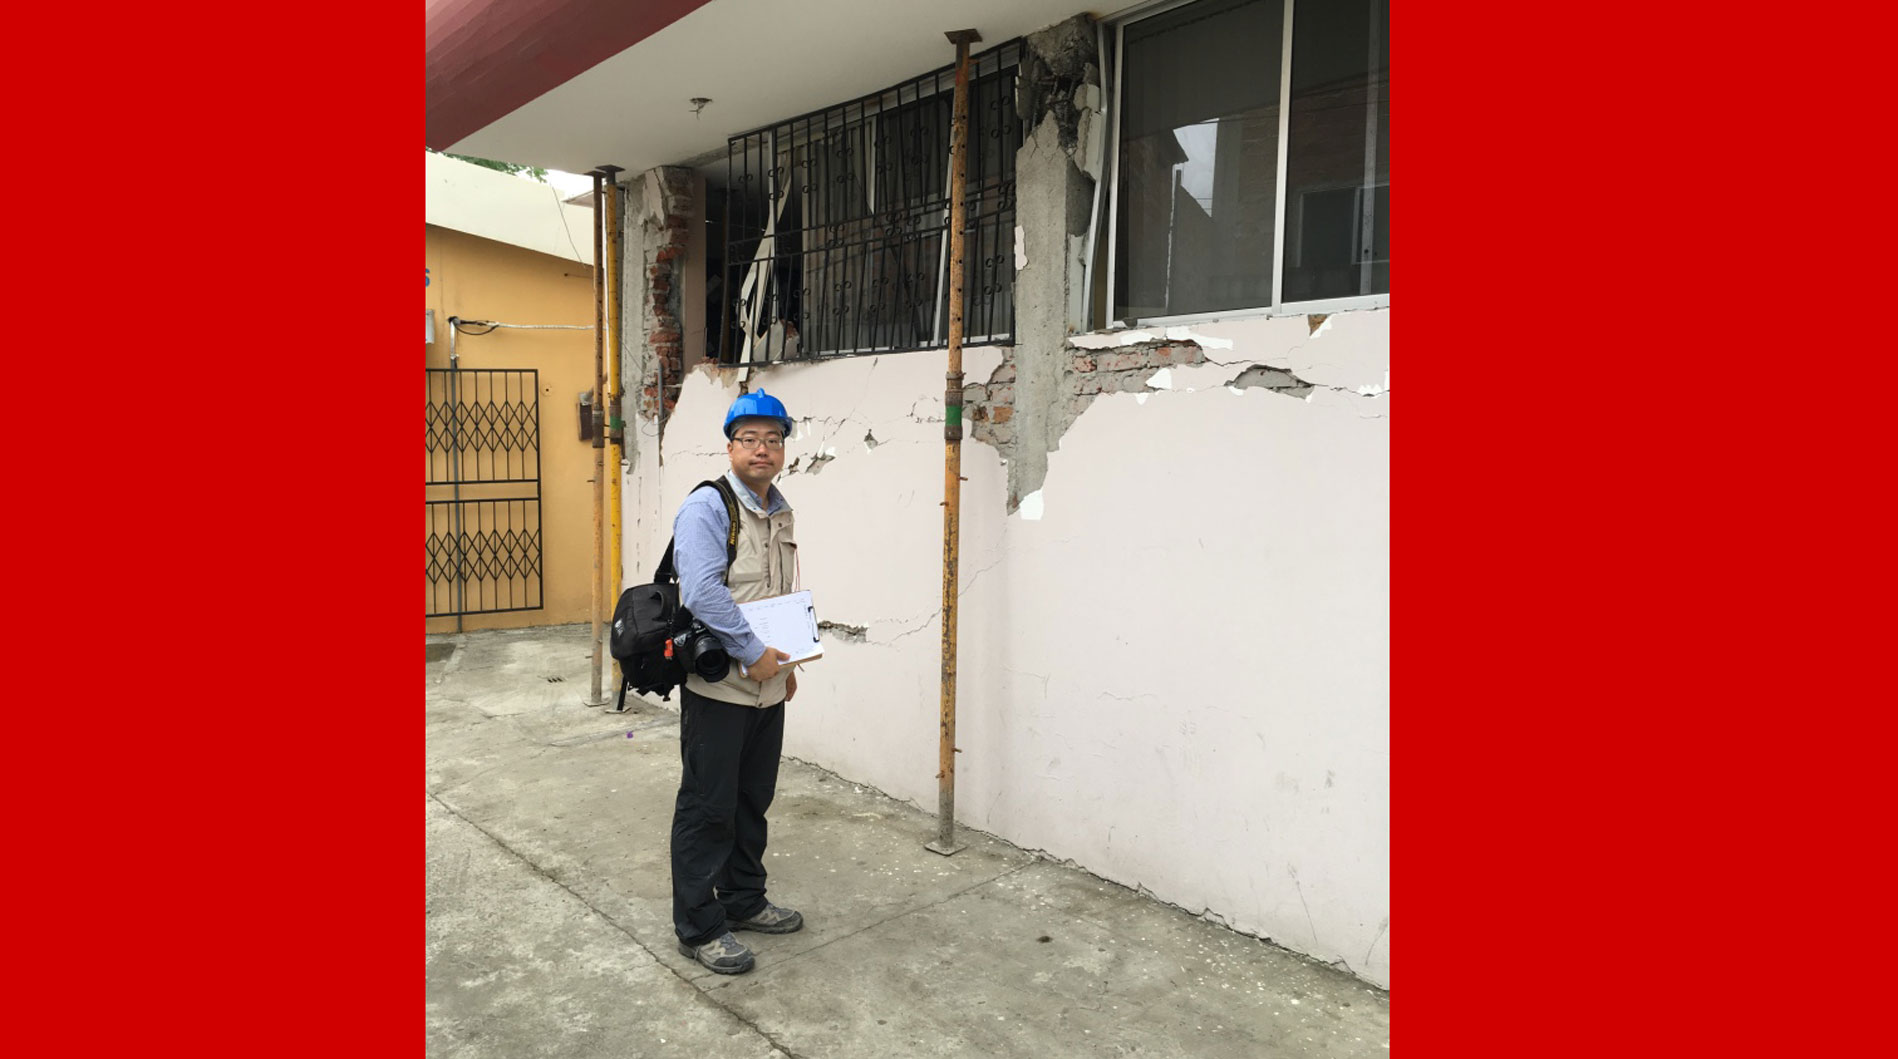 Dr. Sim surveying captive columns after the April 2016 earthquake in Ecuador. The results of this survey have been uploaded to the DataCenterHub platform.